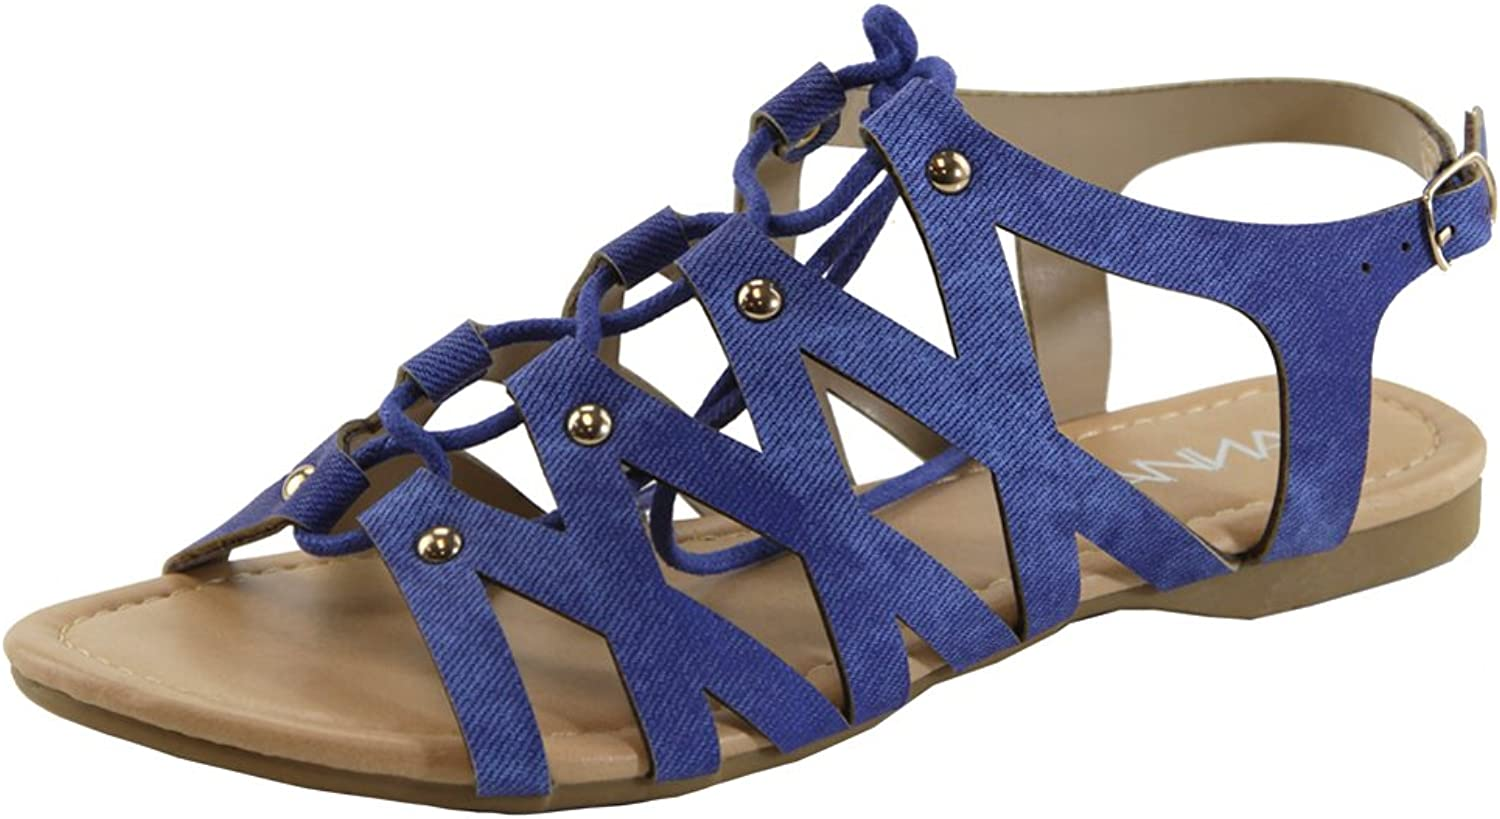 Bella Marie CHELSSI-10 Women's Lace Up Buckle Strap Gladiator Flat Sandals